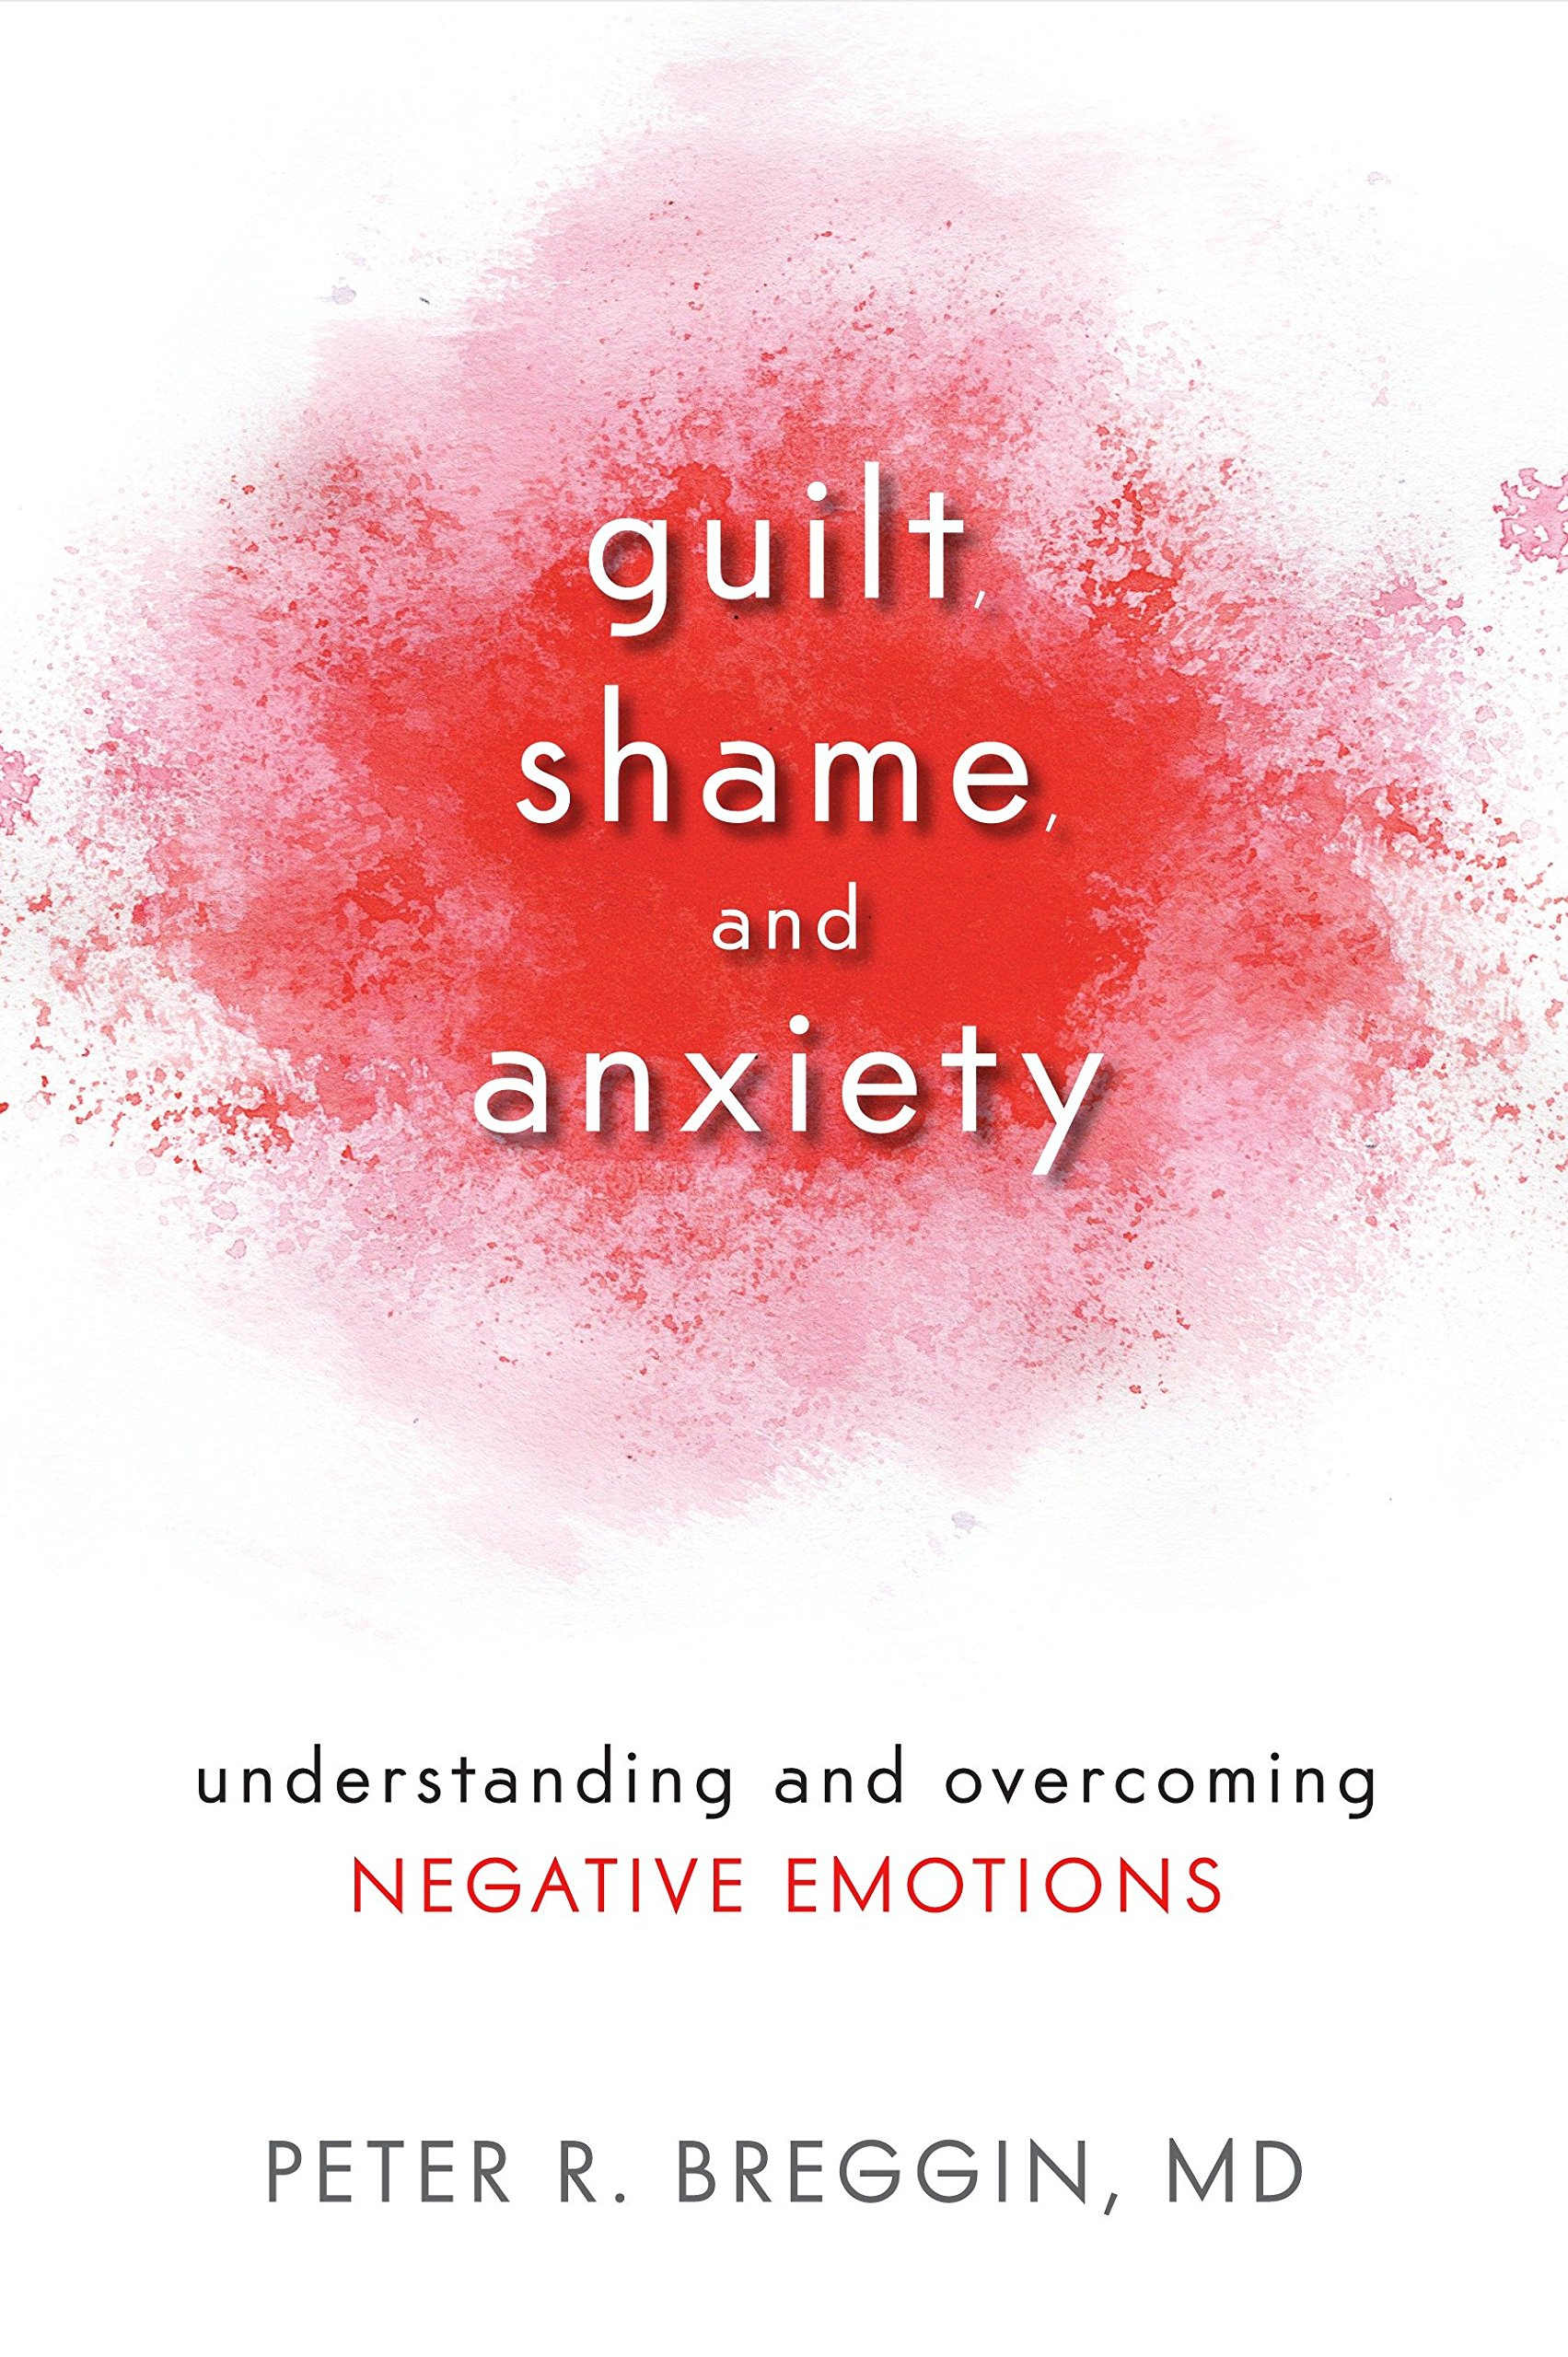 Guilt, Shame, and Anxiety: Understanding and Overcoming Negative Emotions:  Amazon.co.uk: Peter R. Breggin: 9781616141493: Books